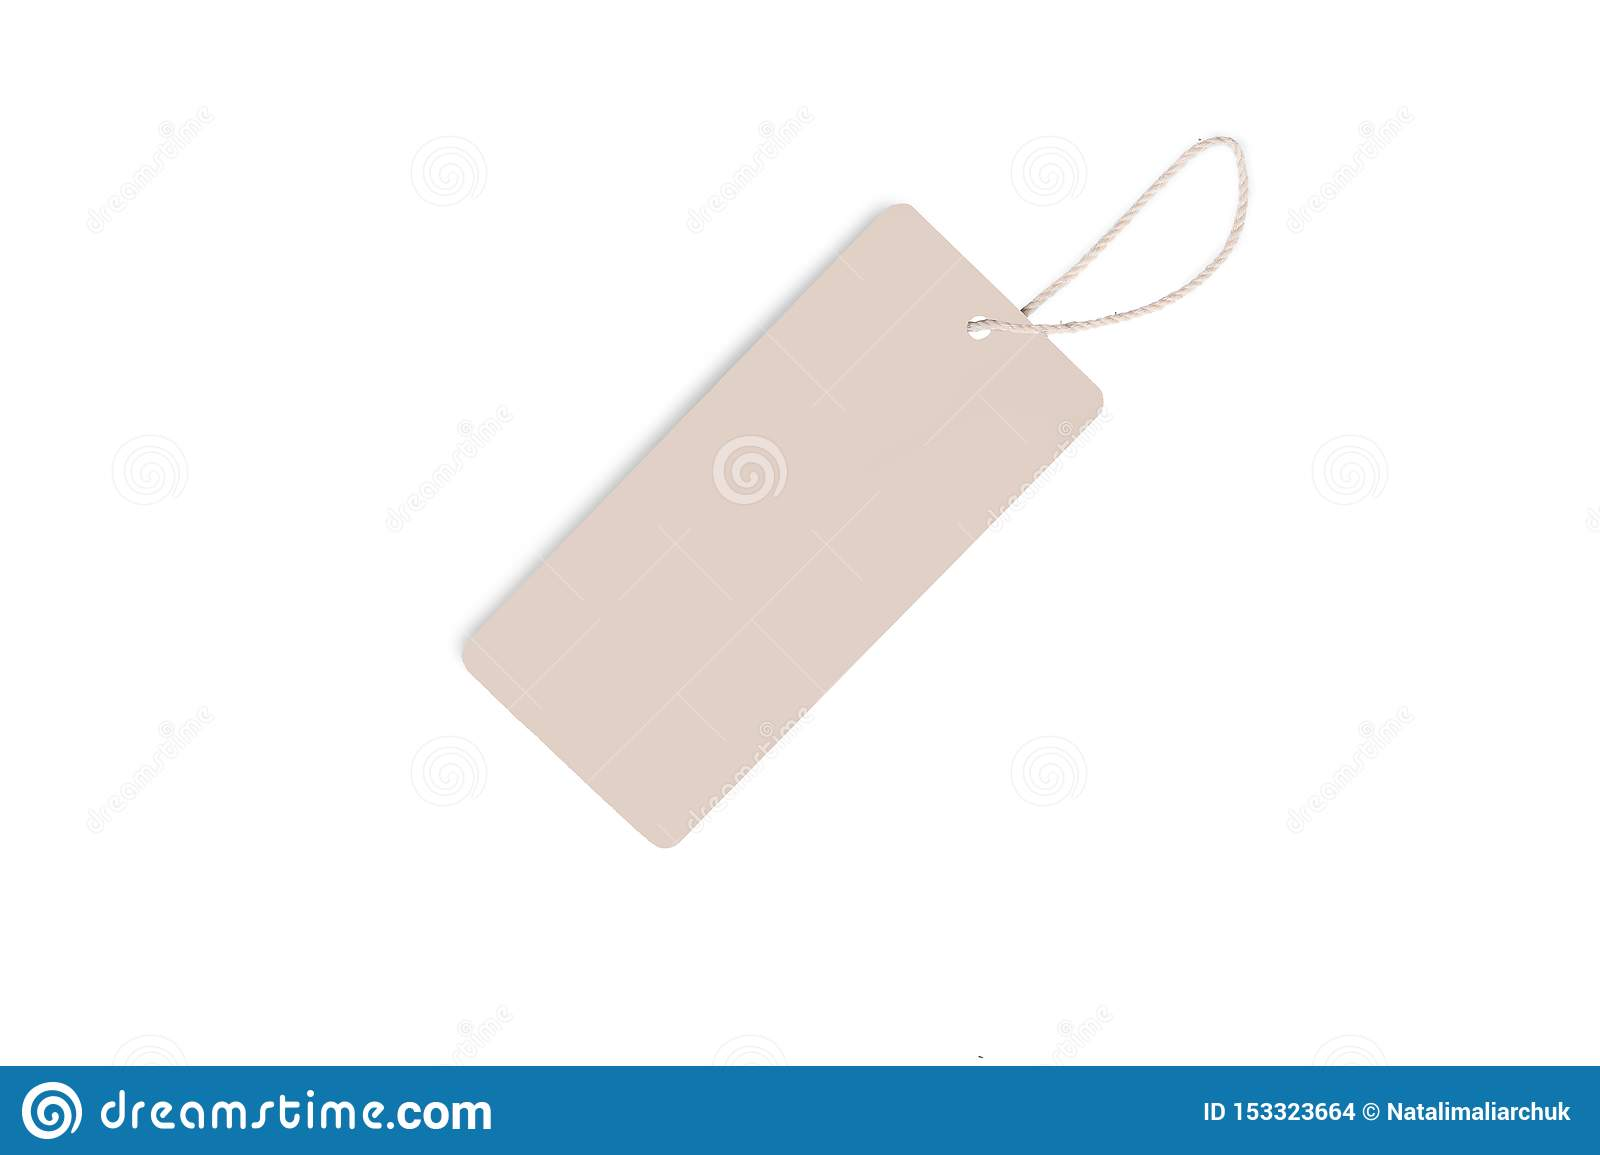 Blank decorative cardboard paper gift tag with twine tie, isolated on white background